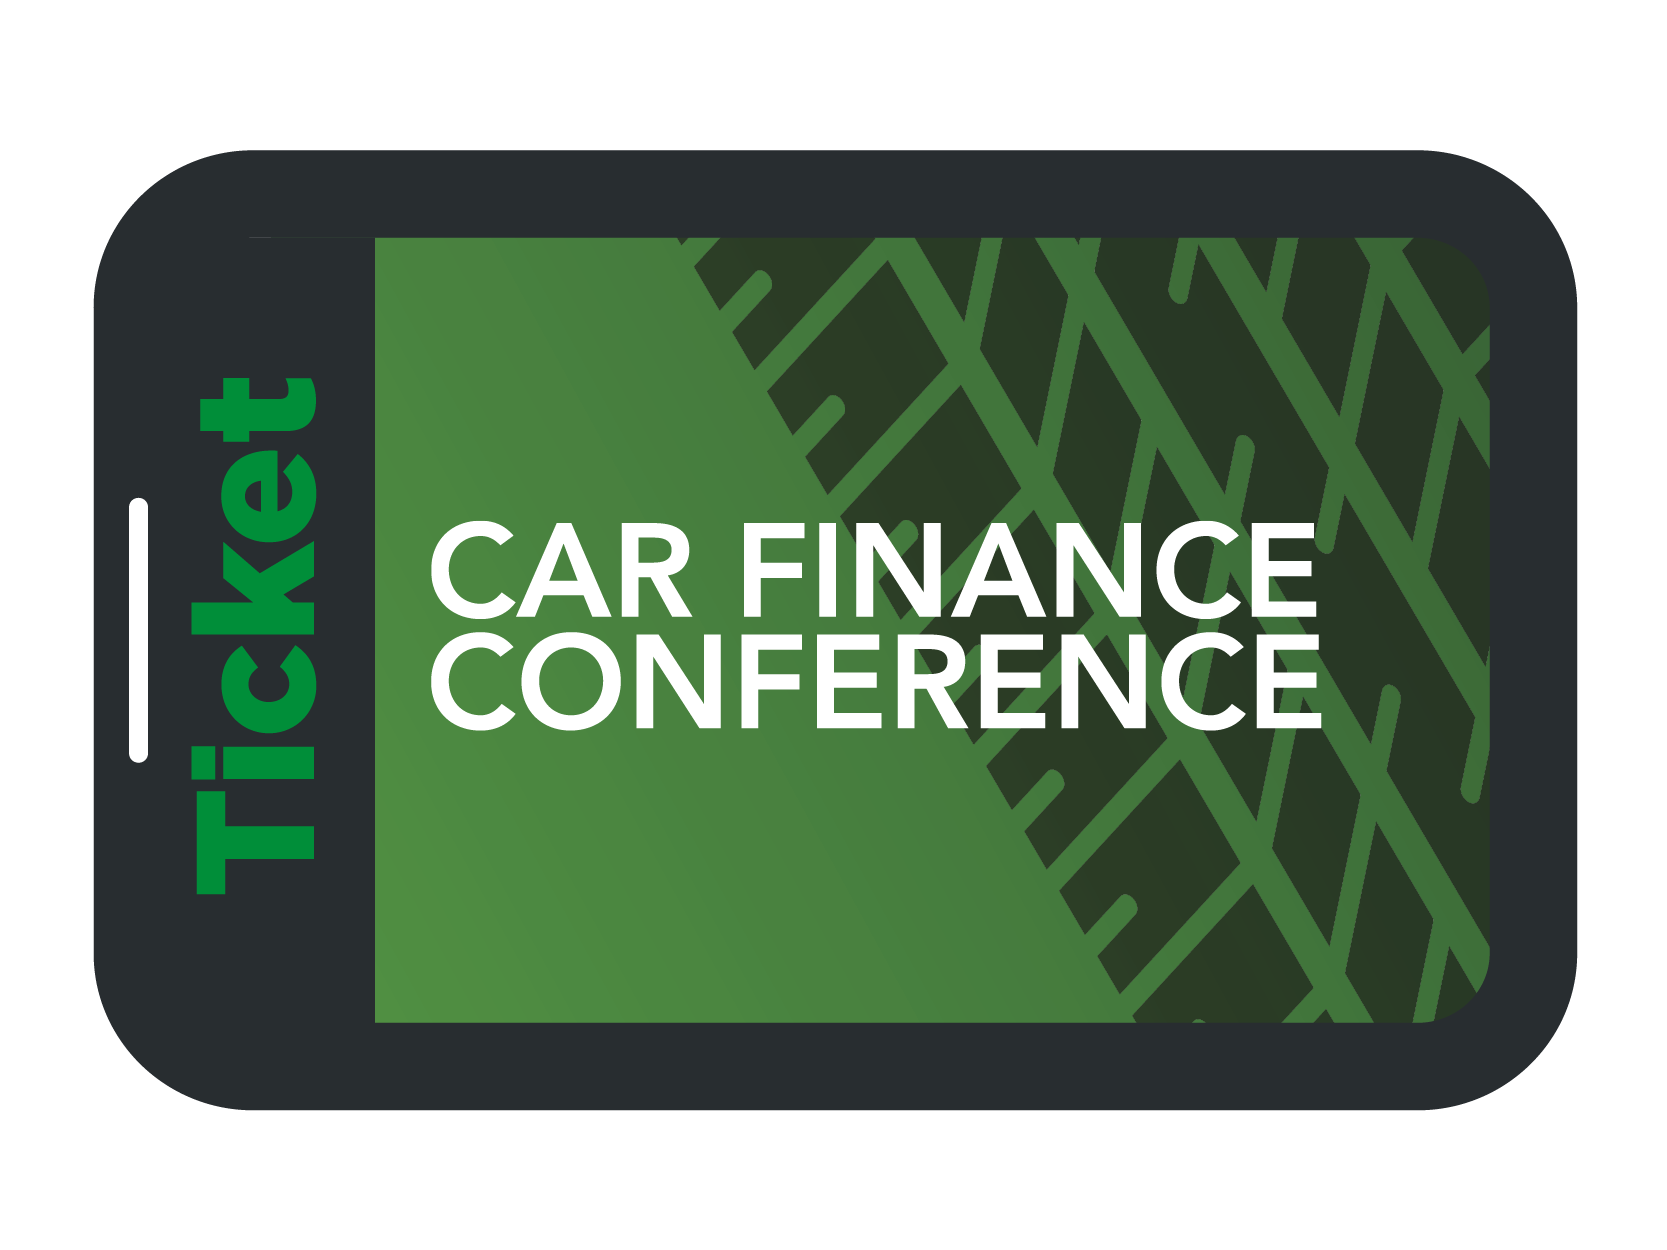 CarFinance-shop-01.png